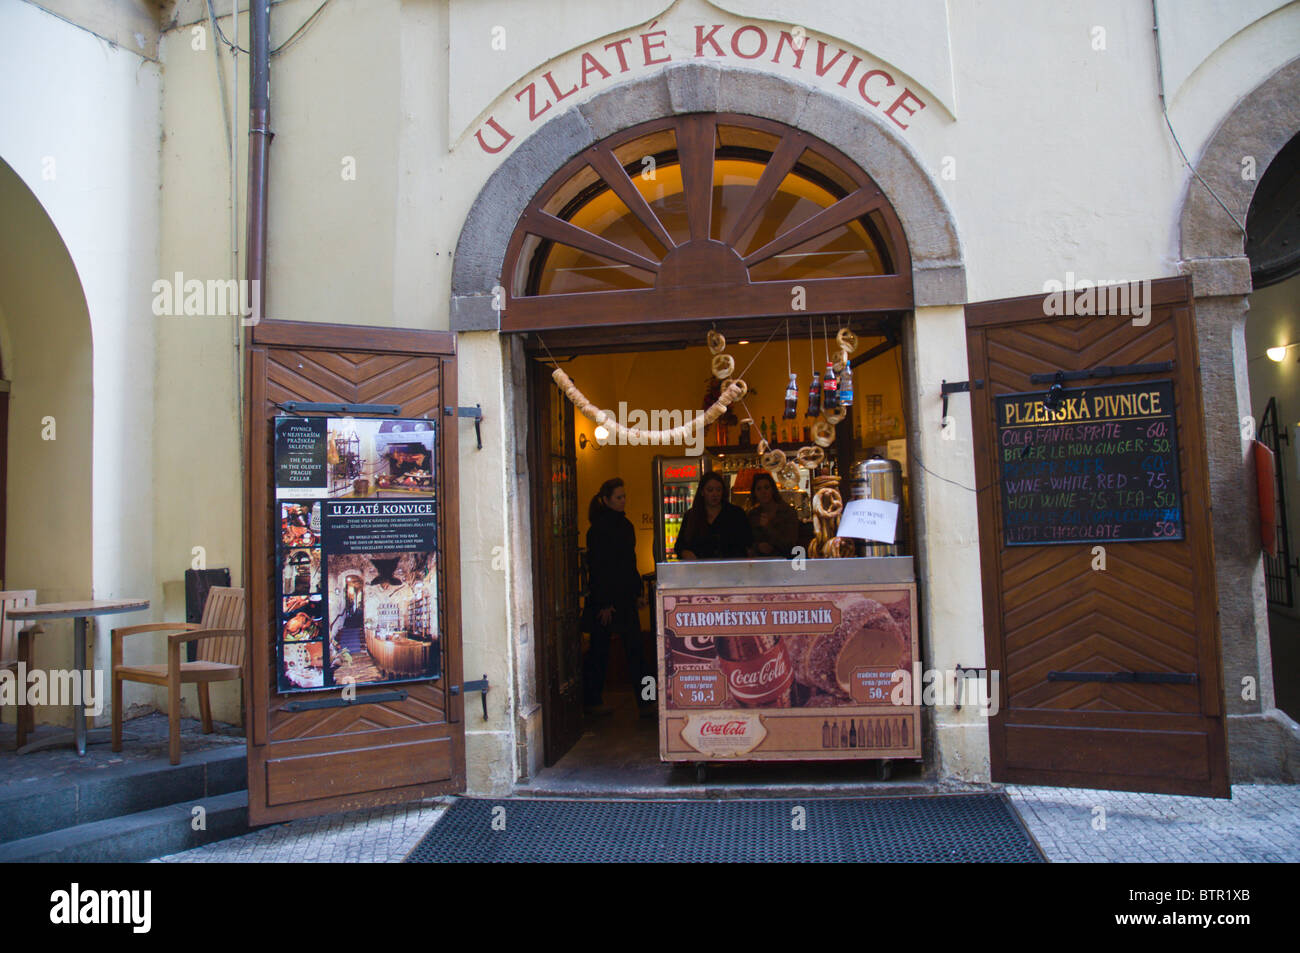 U Zlate Konvice cellar bar exterior at old town square Prague Czech Republic Europe - Stock & Cellar Door Bar Stock Photos u0026 Cellar Door Bar Stock Images - Alamy